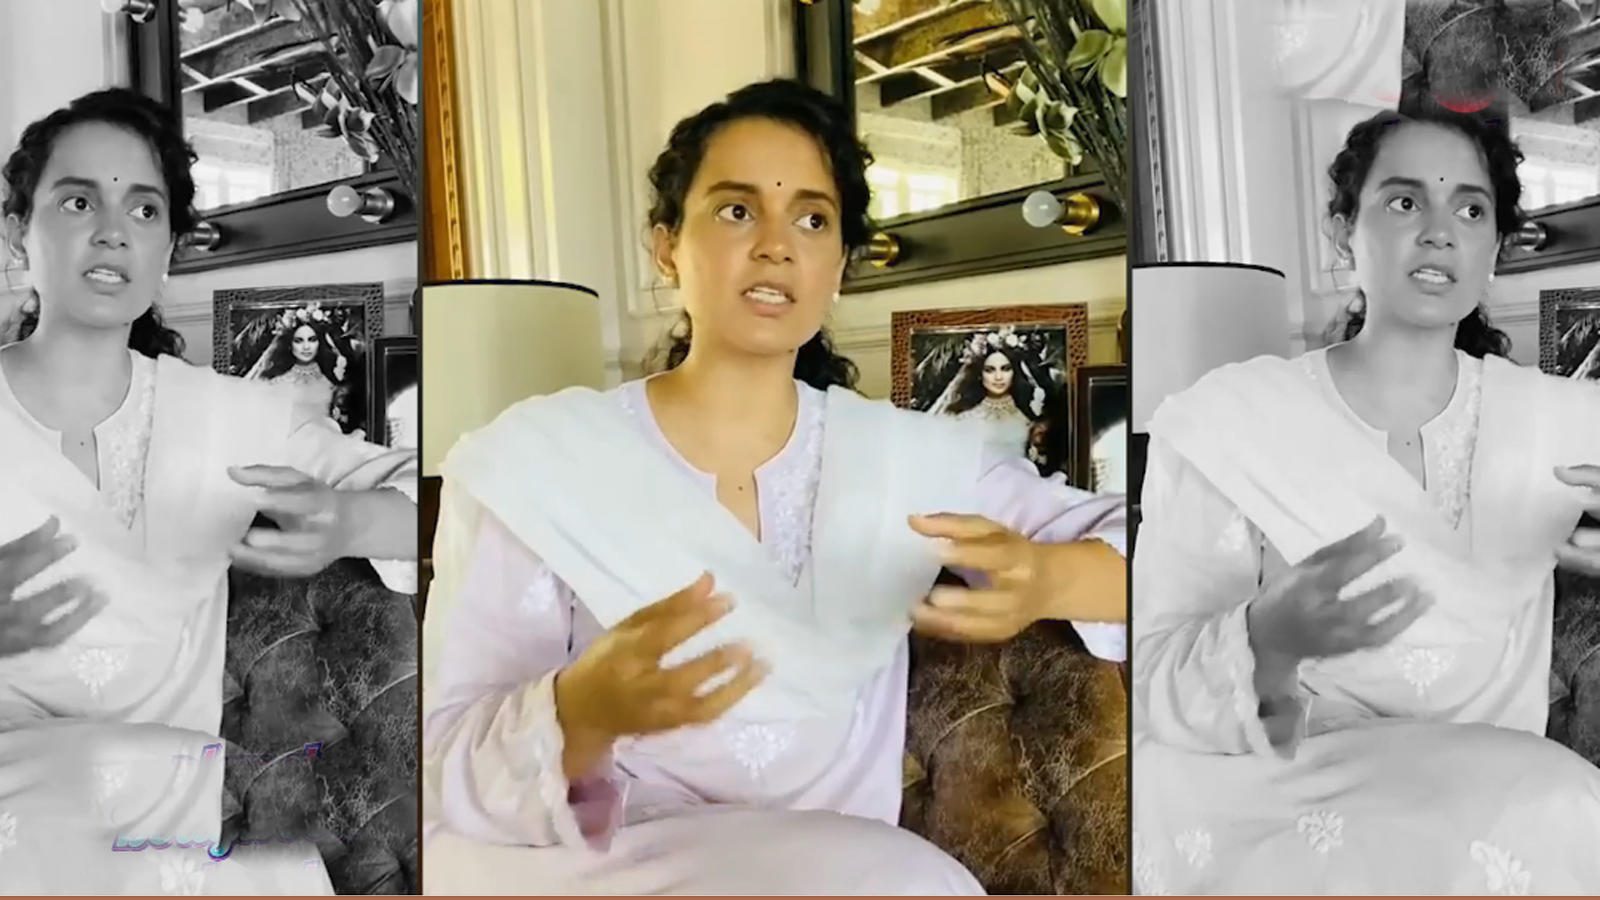 kangana-ranaut-reiterates-her-stand-on-banning-more-chinese-products-urges-fans-not-to-fall-for-sasta-and-cheap-quality